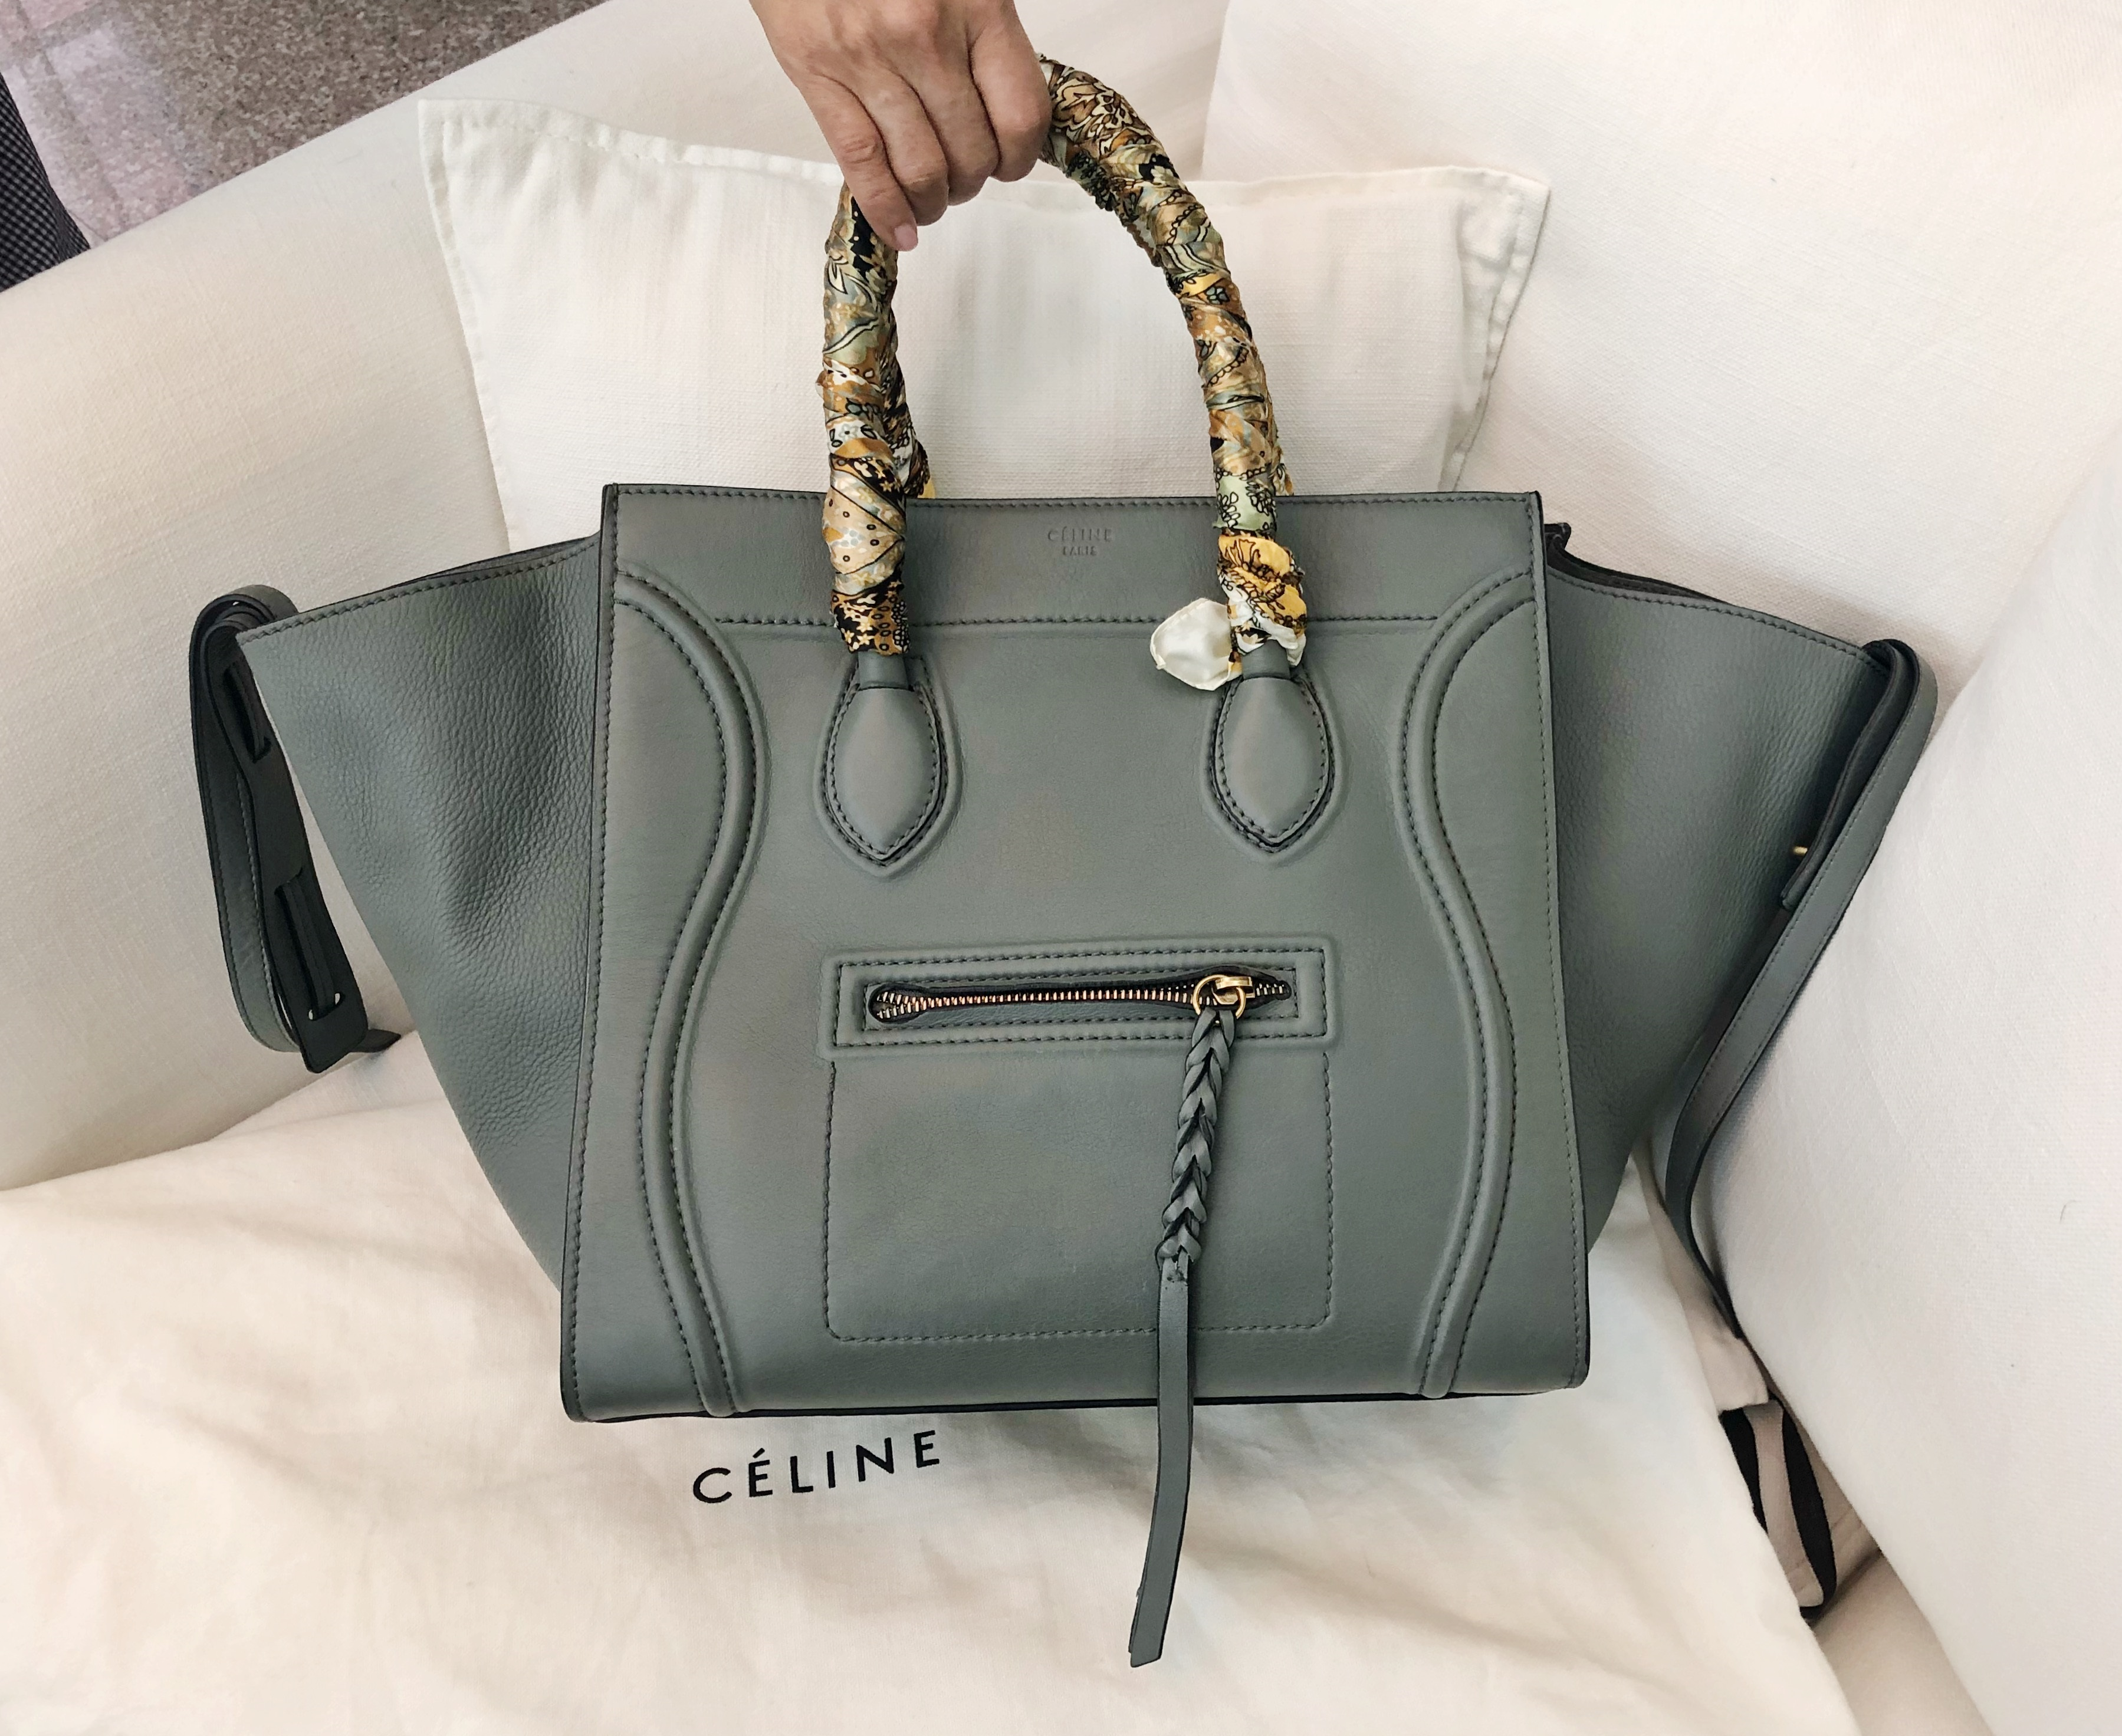 Celine Balenciaga Mini Metallic Edge Ghw Grey With A Green Undertone Phantom Comes Dustbag And The Satin Scarf On Handles Condition 99 10 Worn Twice Selling Price Sgd230000